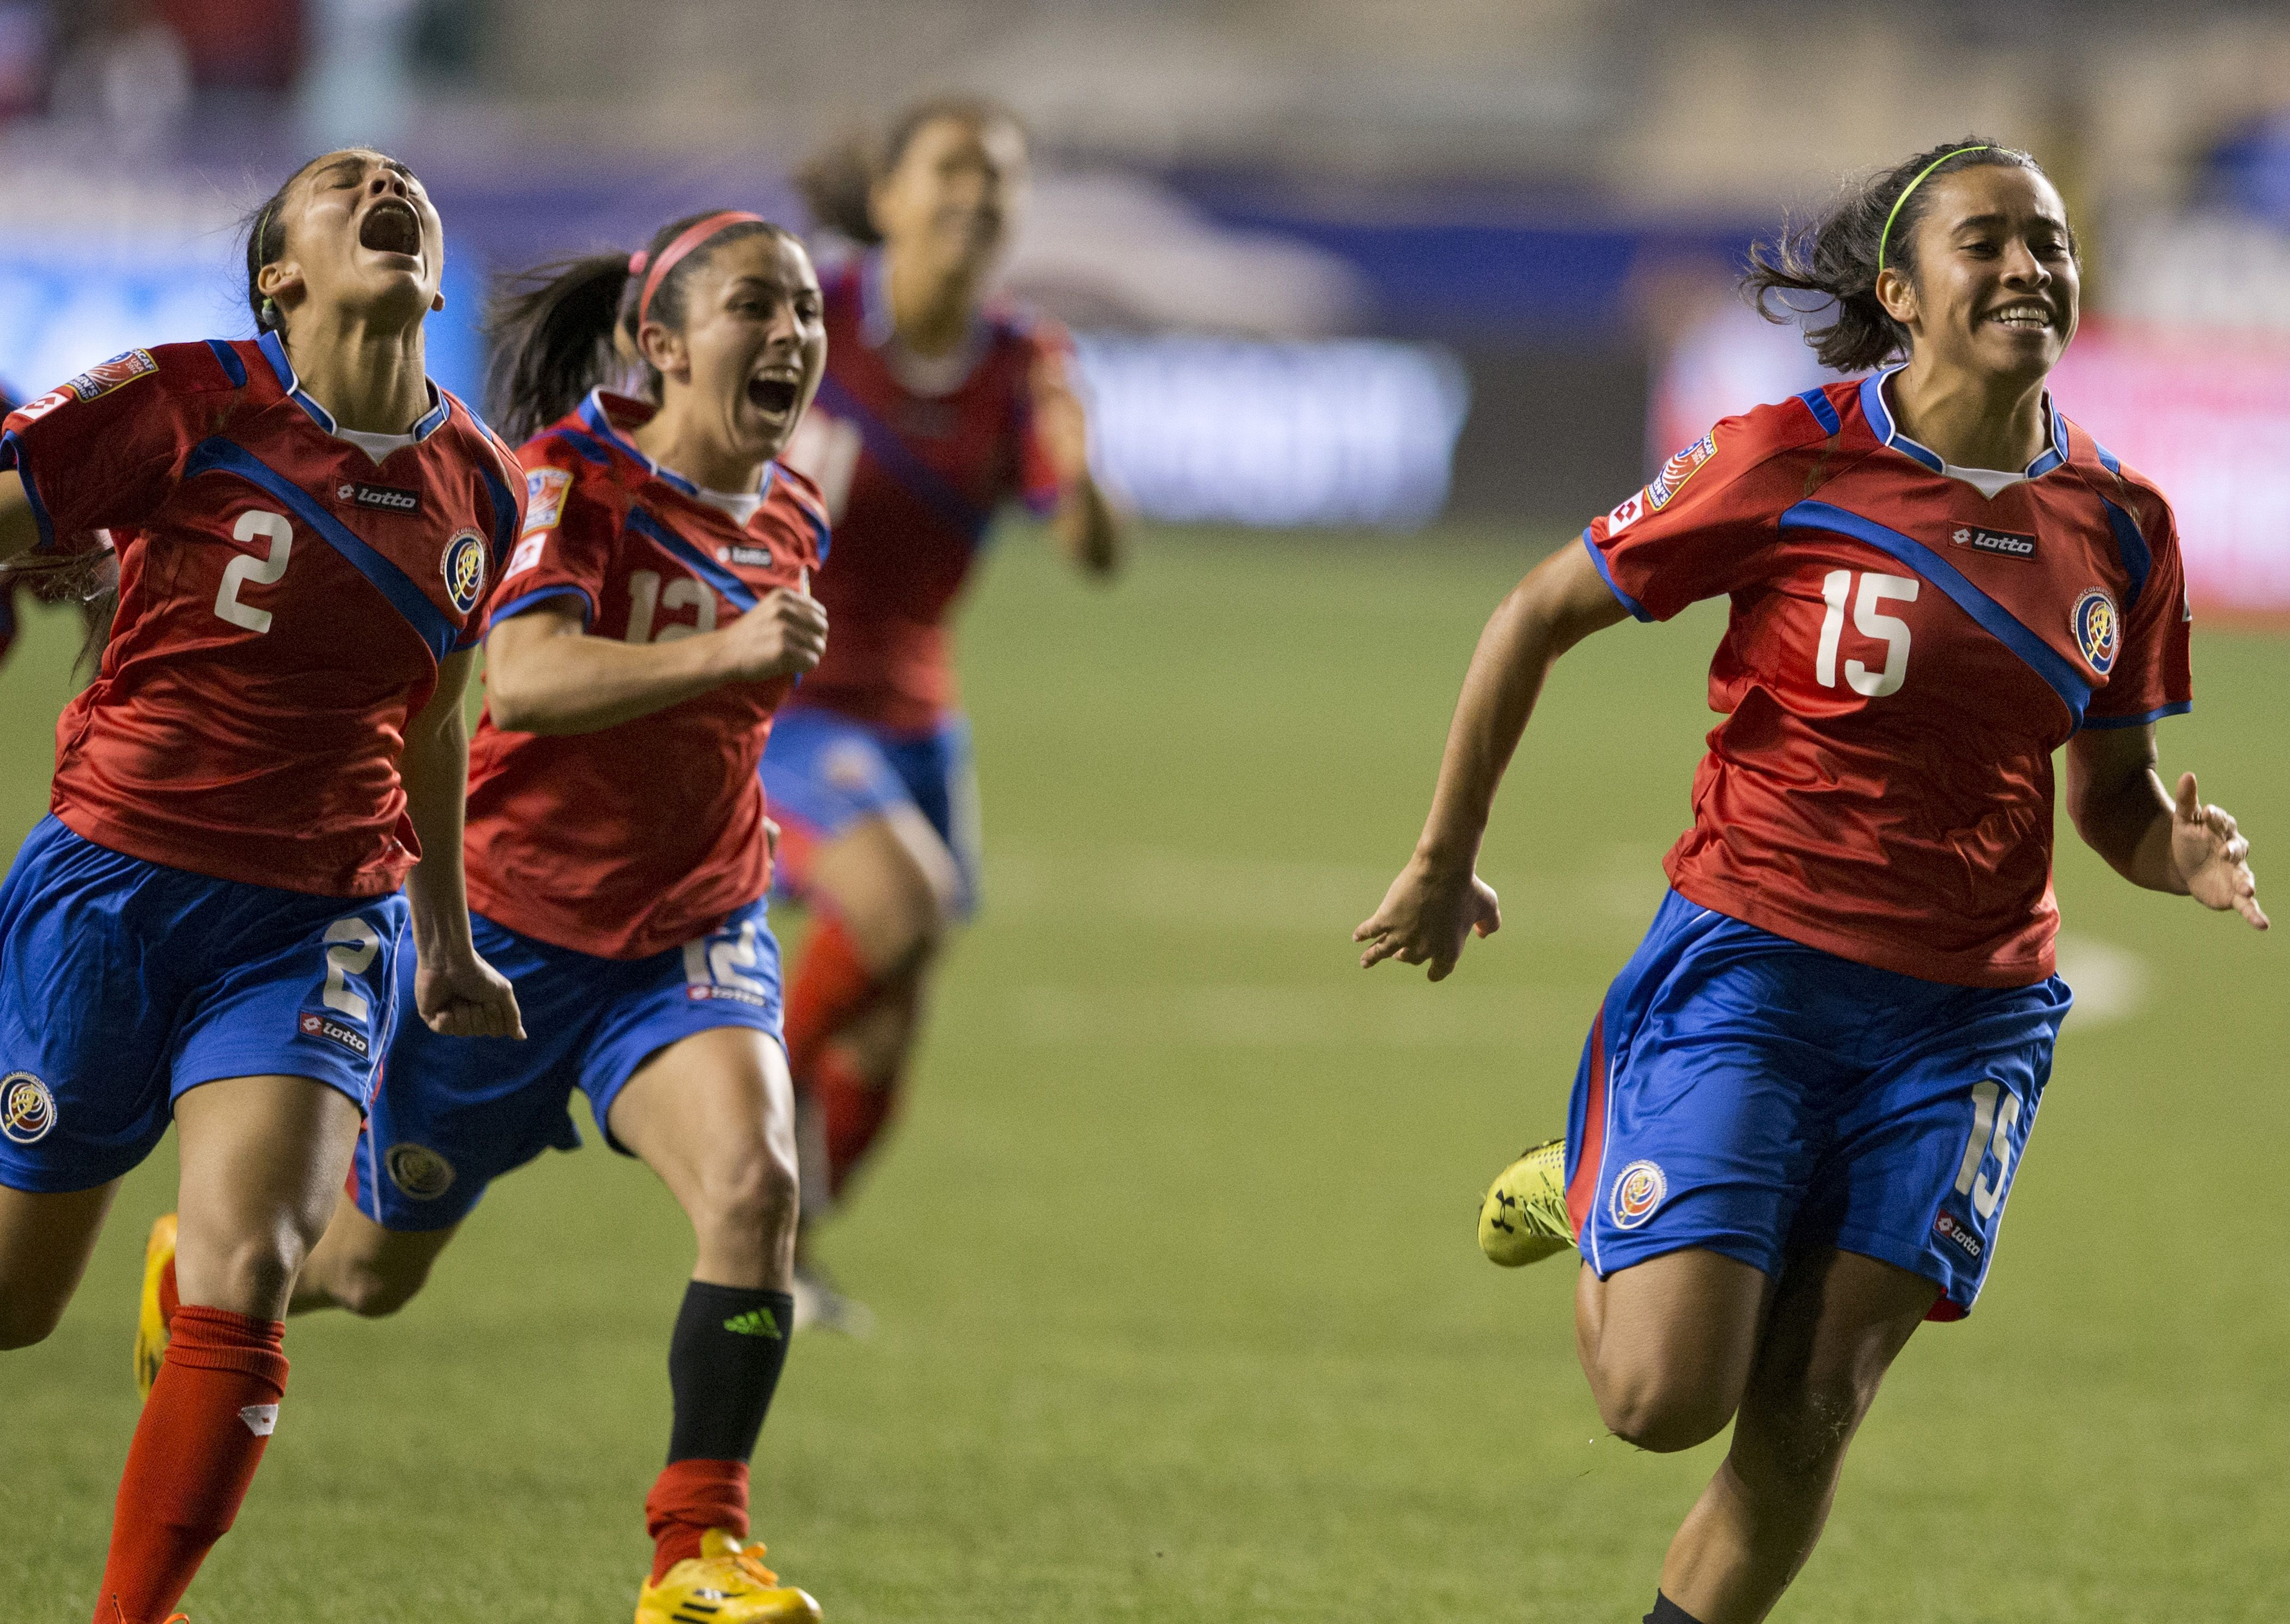 CHESTER, PA - OCTOBER 24: Lixy Rodriguez #12, Gabriela Guillen #2, Cristin Granados #15 of Costa Rica react after defeating Trinidad & Tobago in a shoot out in the  2014 CONCACAF Women's Championship semifinal game on October 24, 2014 at PPL Park in Chester, Pennsylvania. (Photo by Mitchell Leff/Getty Images)  Costa Rica defeated Trinidad & Tobago in a shoot out 3-0